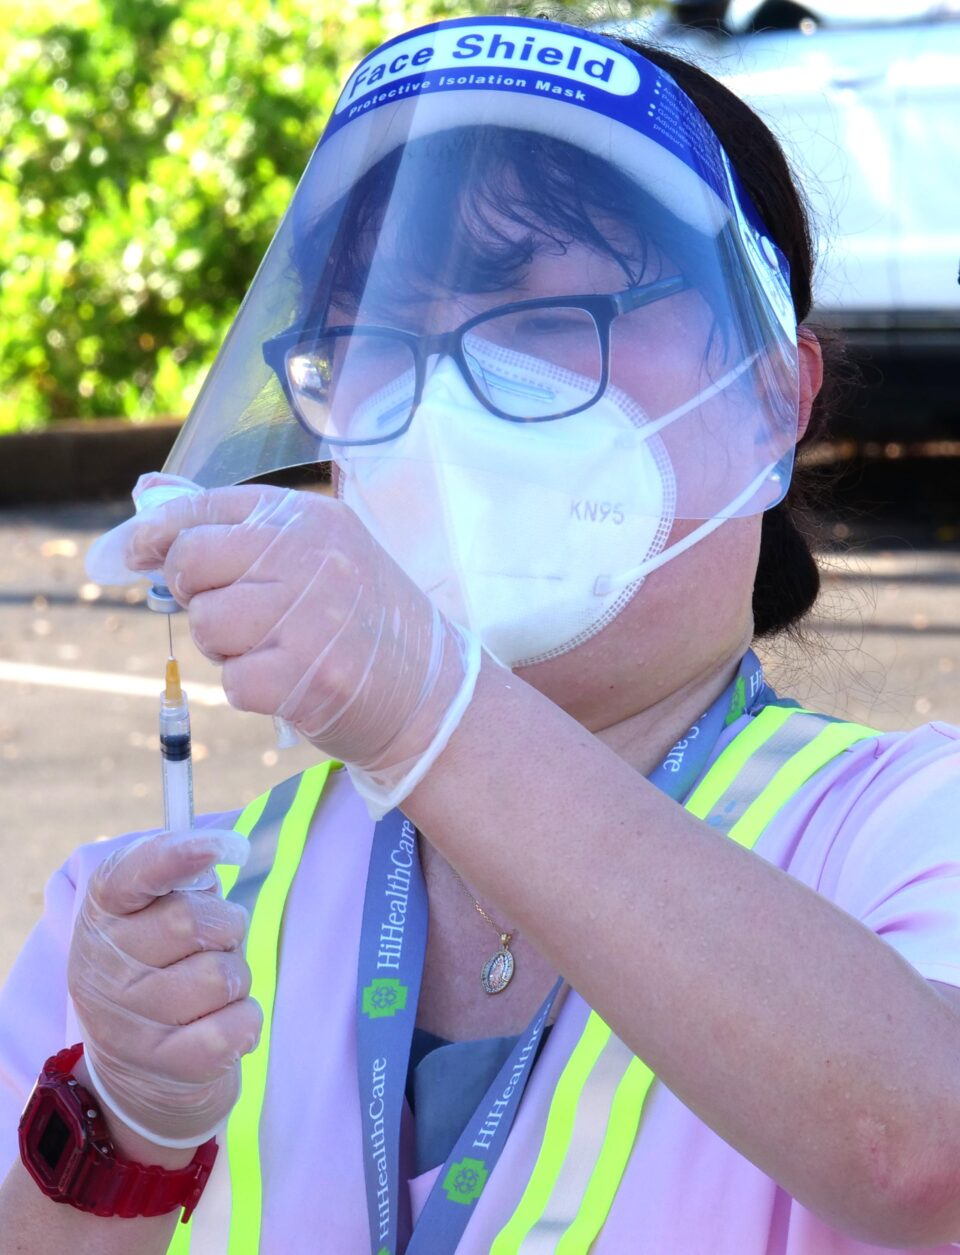 A volunteer prepares flu shots to be administered during a free drive-thru flu shot clinic at the Kaka'ako district park Saturday, Oct. 3, 2020. (Ronen Zilberman photo Civil Beat)